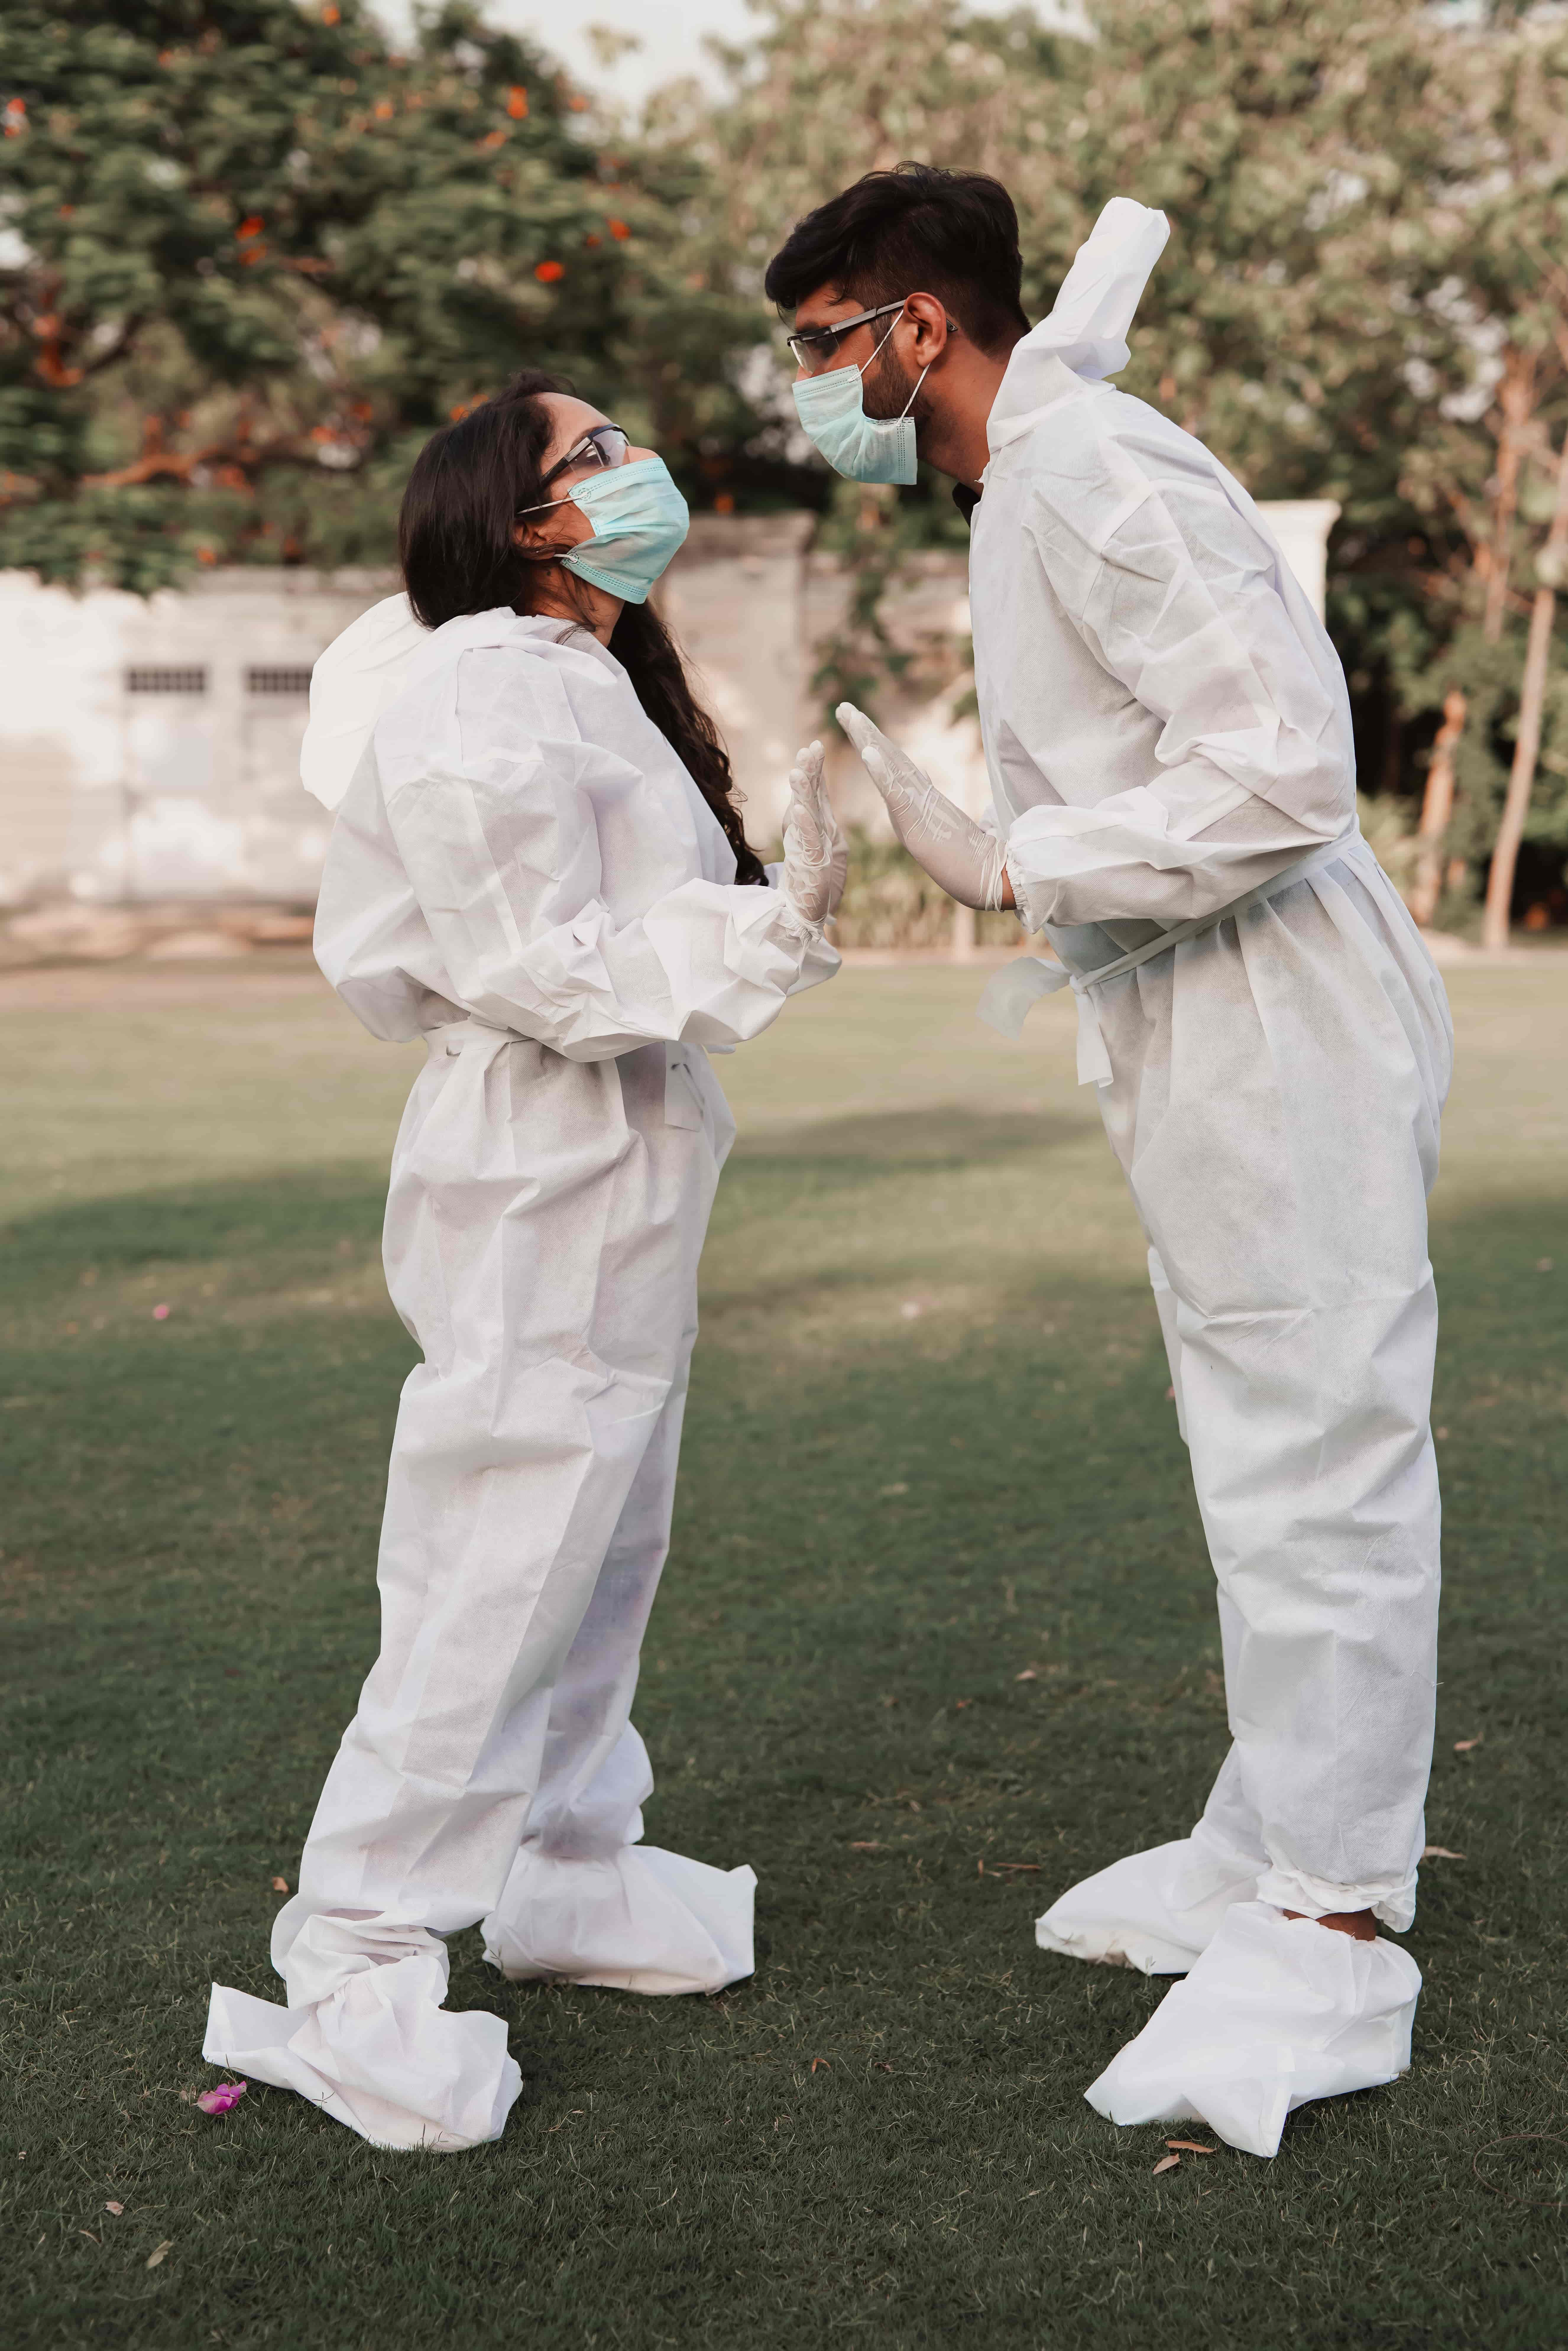 couples in PPE kit